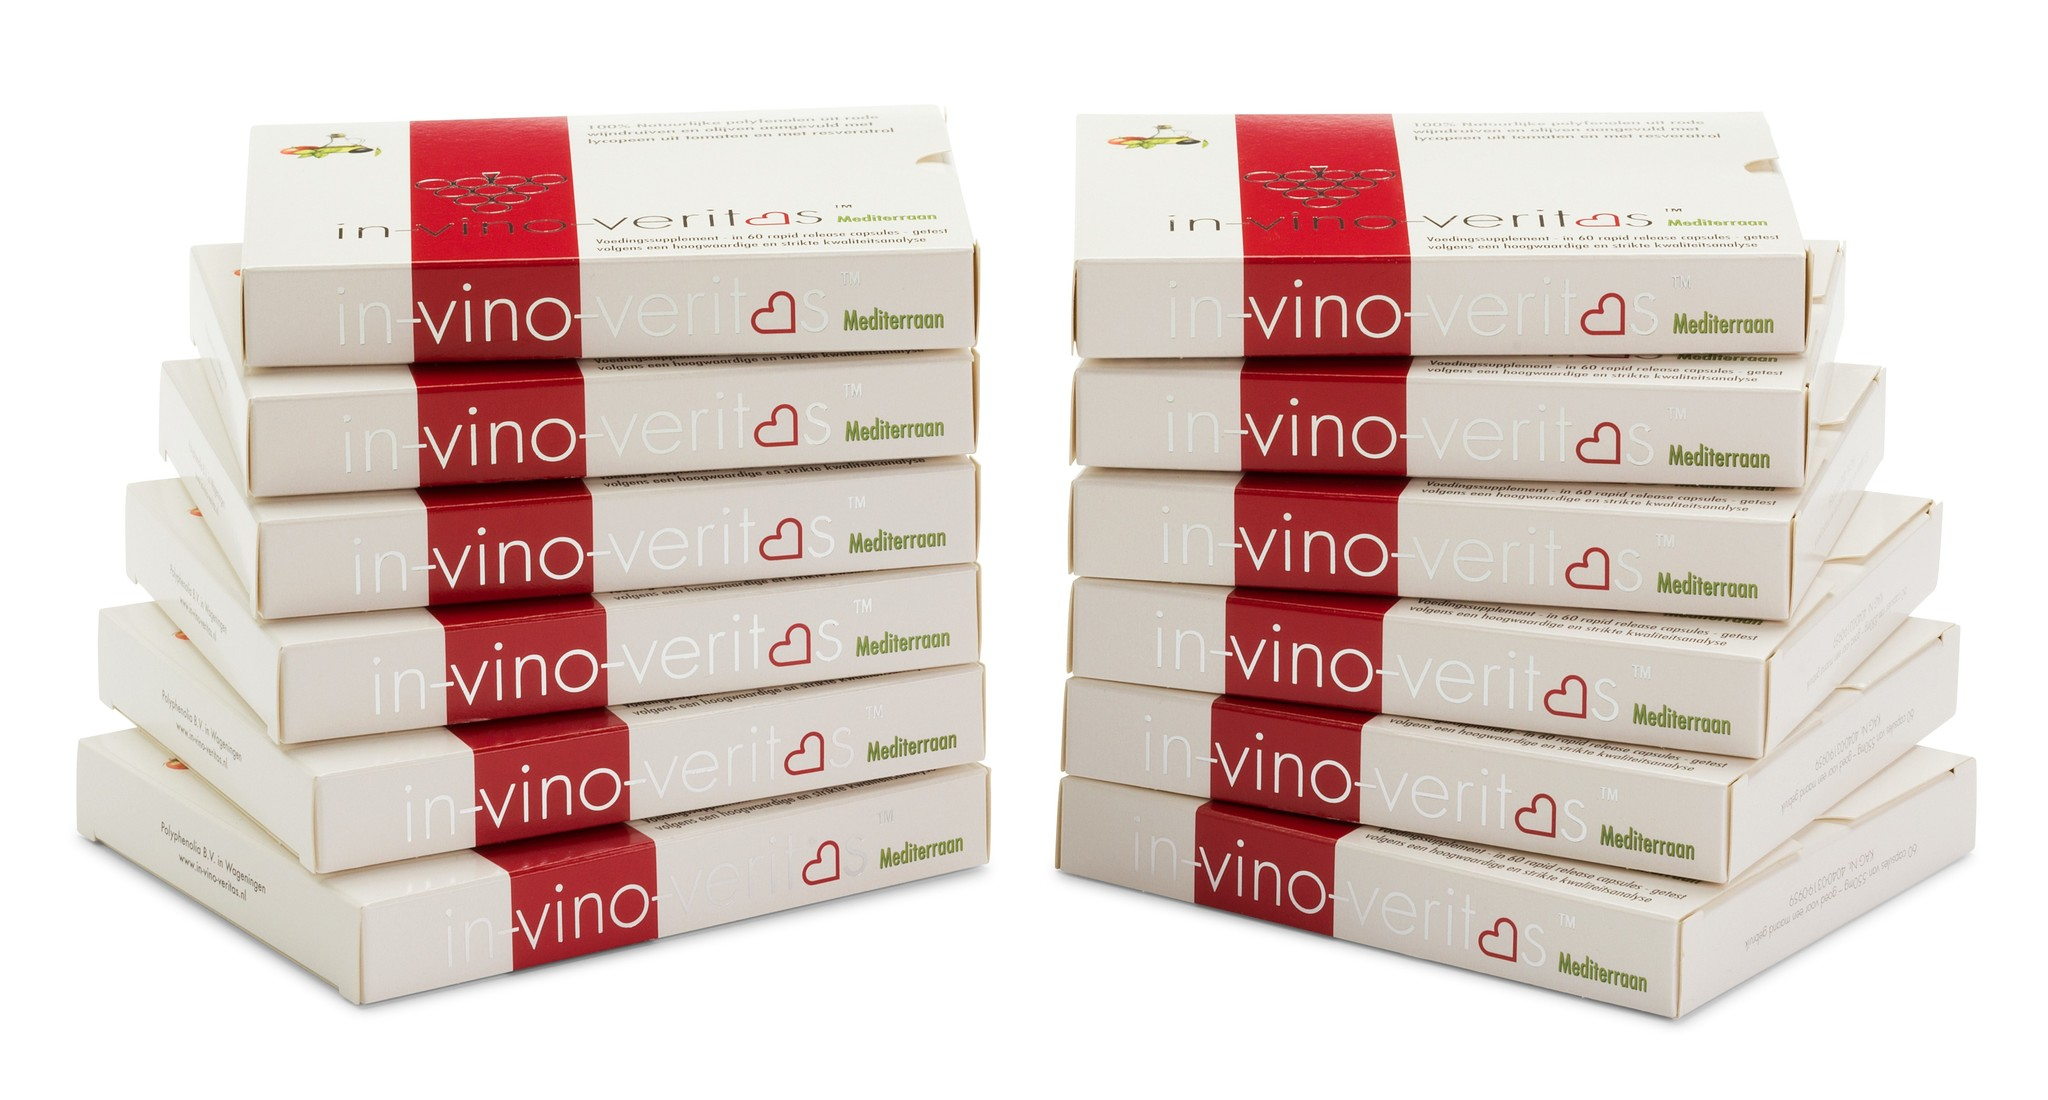 In-Vino-Veritas™ Mediterranean Full Year (10% Discount + Free Shipping in NL)